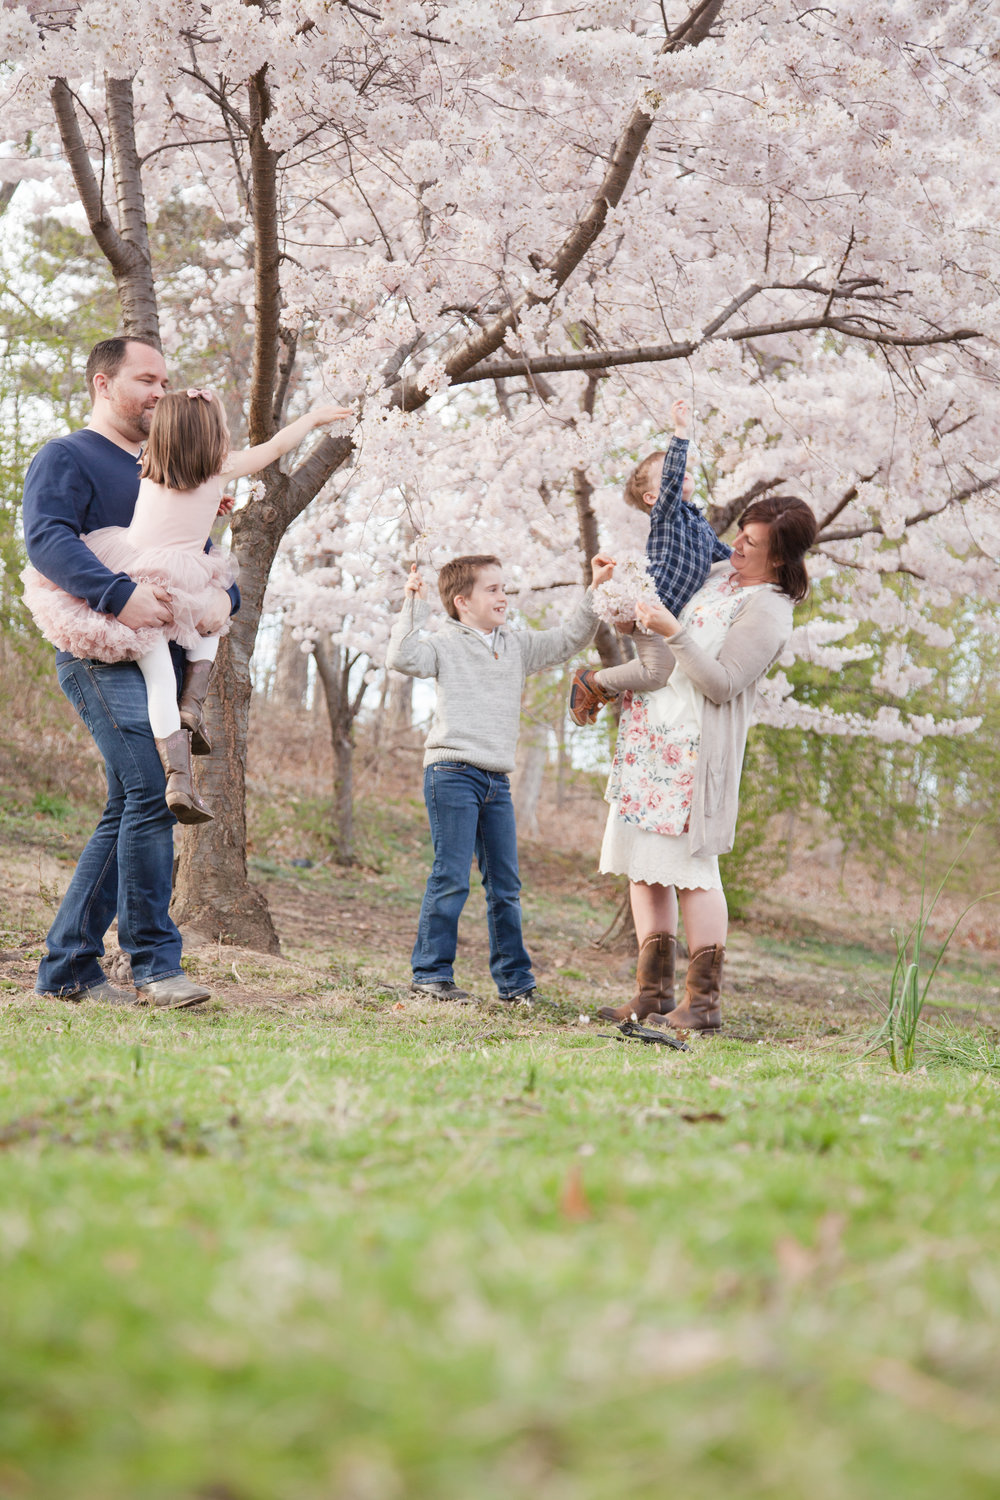 Best Bergen County Photographer, Bergen County Cherry Blossoms Photographer, Spring Blossom Photo Session, Bergen County NJ Photographer